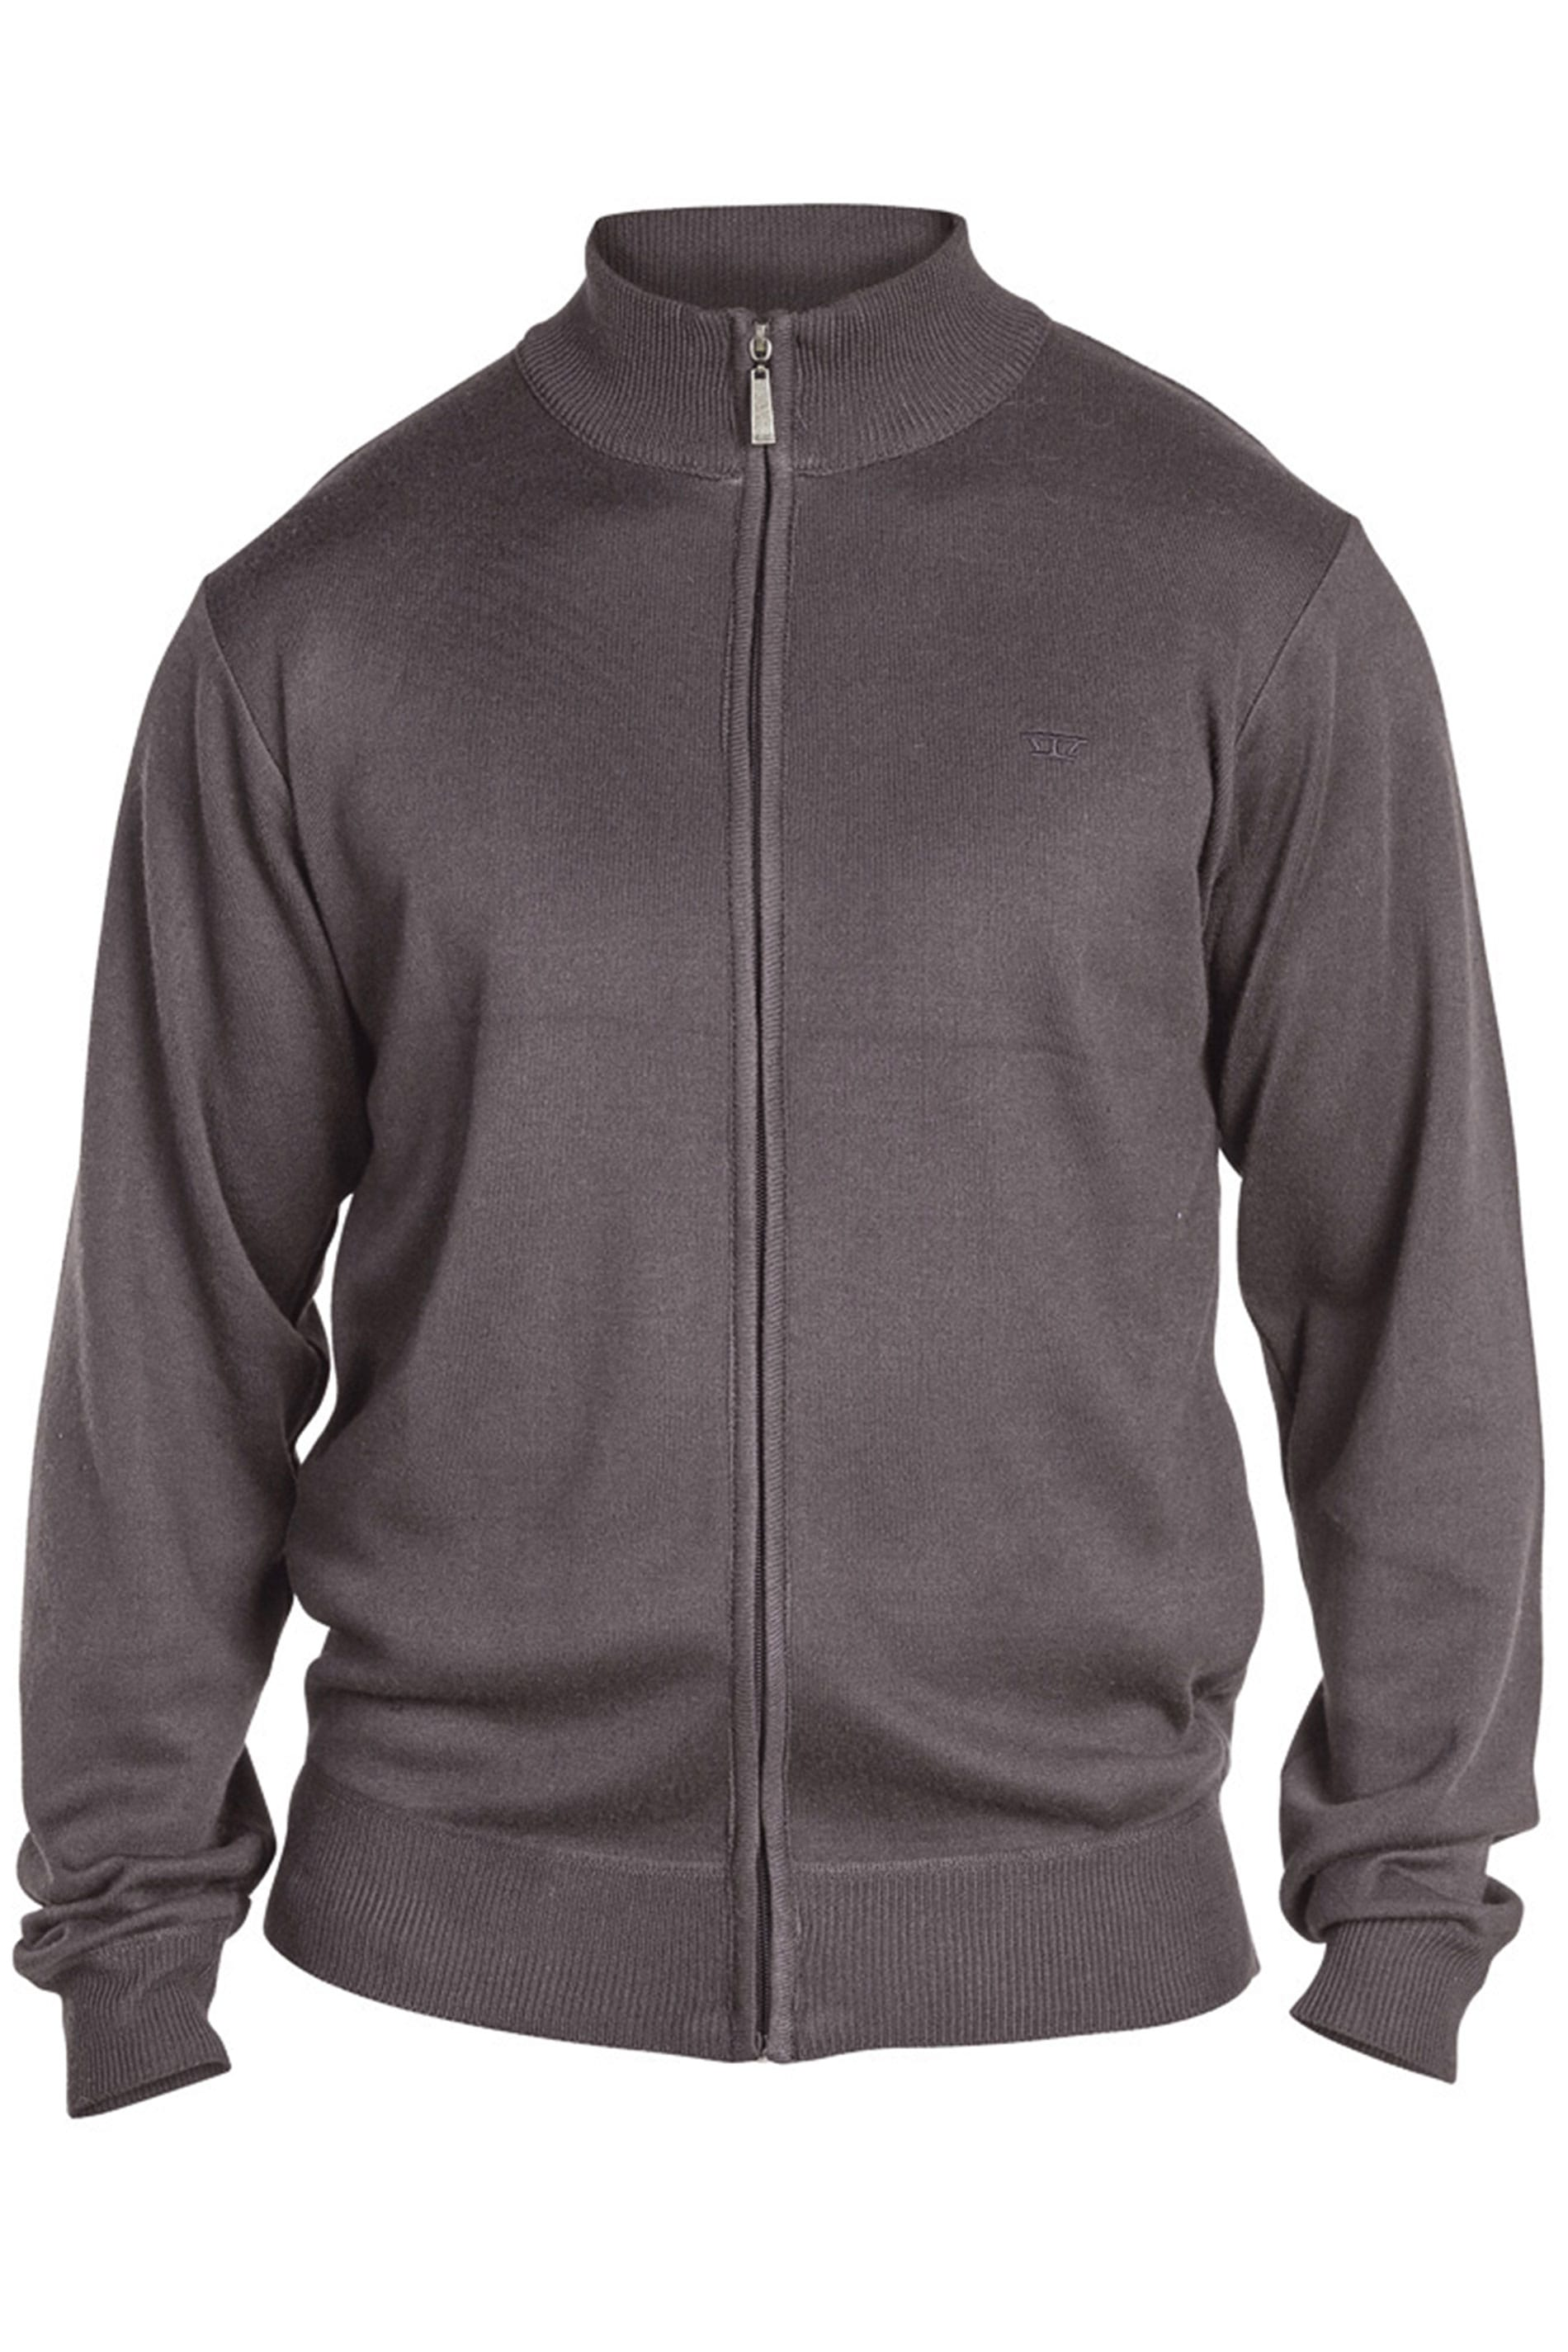 D555 Grey Full Zip Sweatshirt